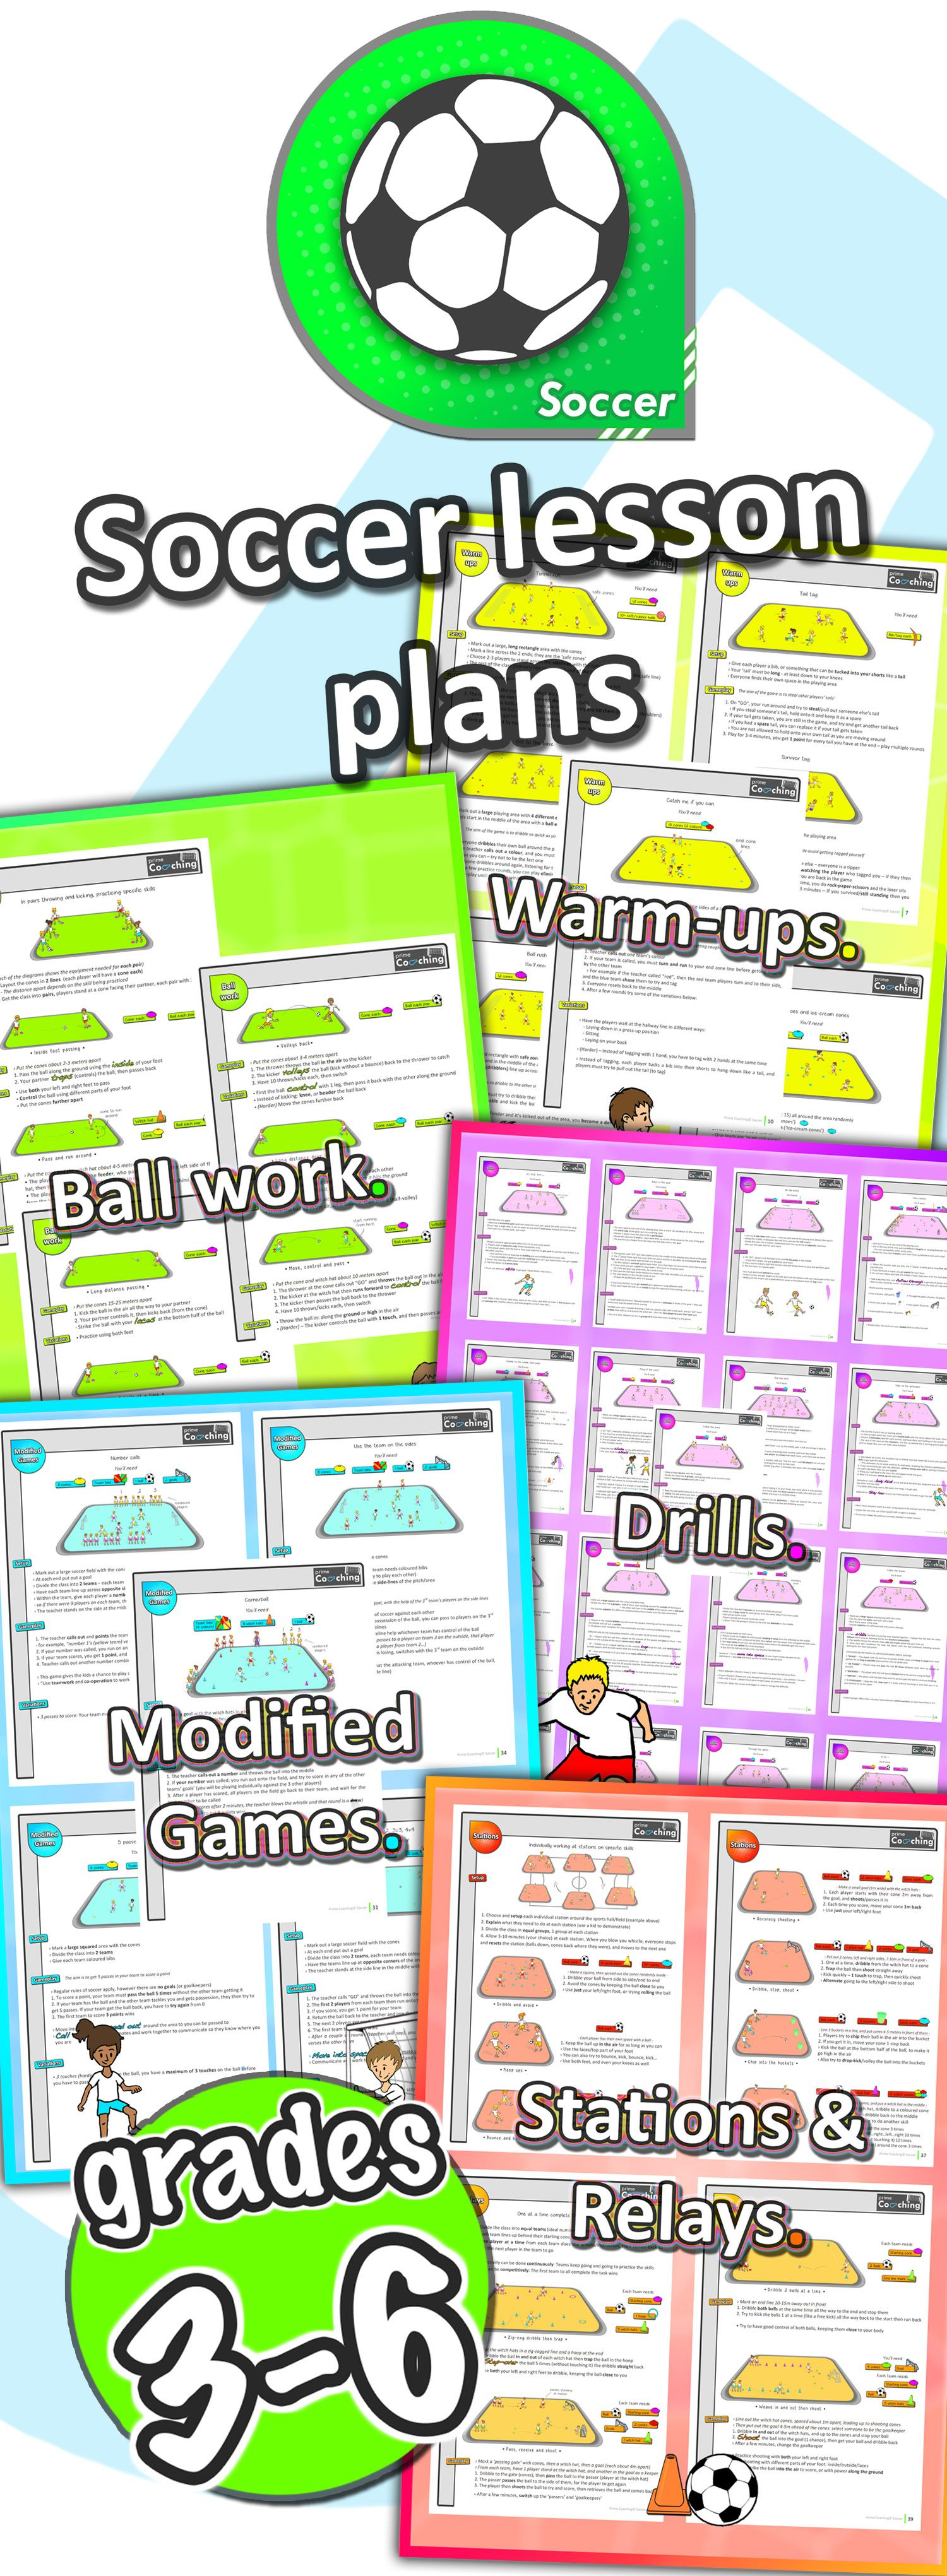 Soccer PE lessons Sport unit with plans, drills, skills